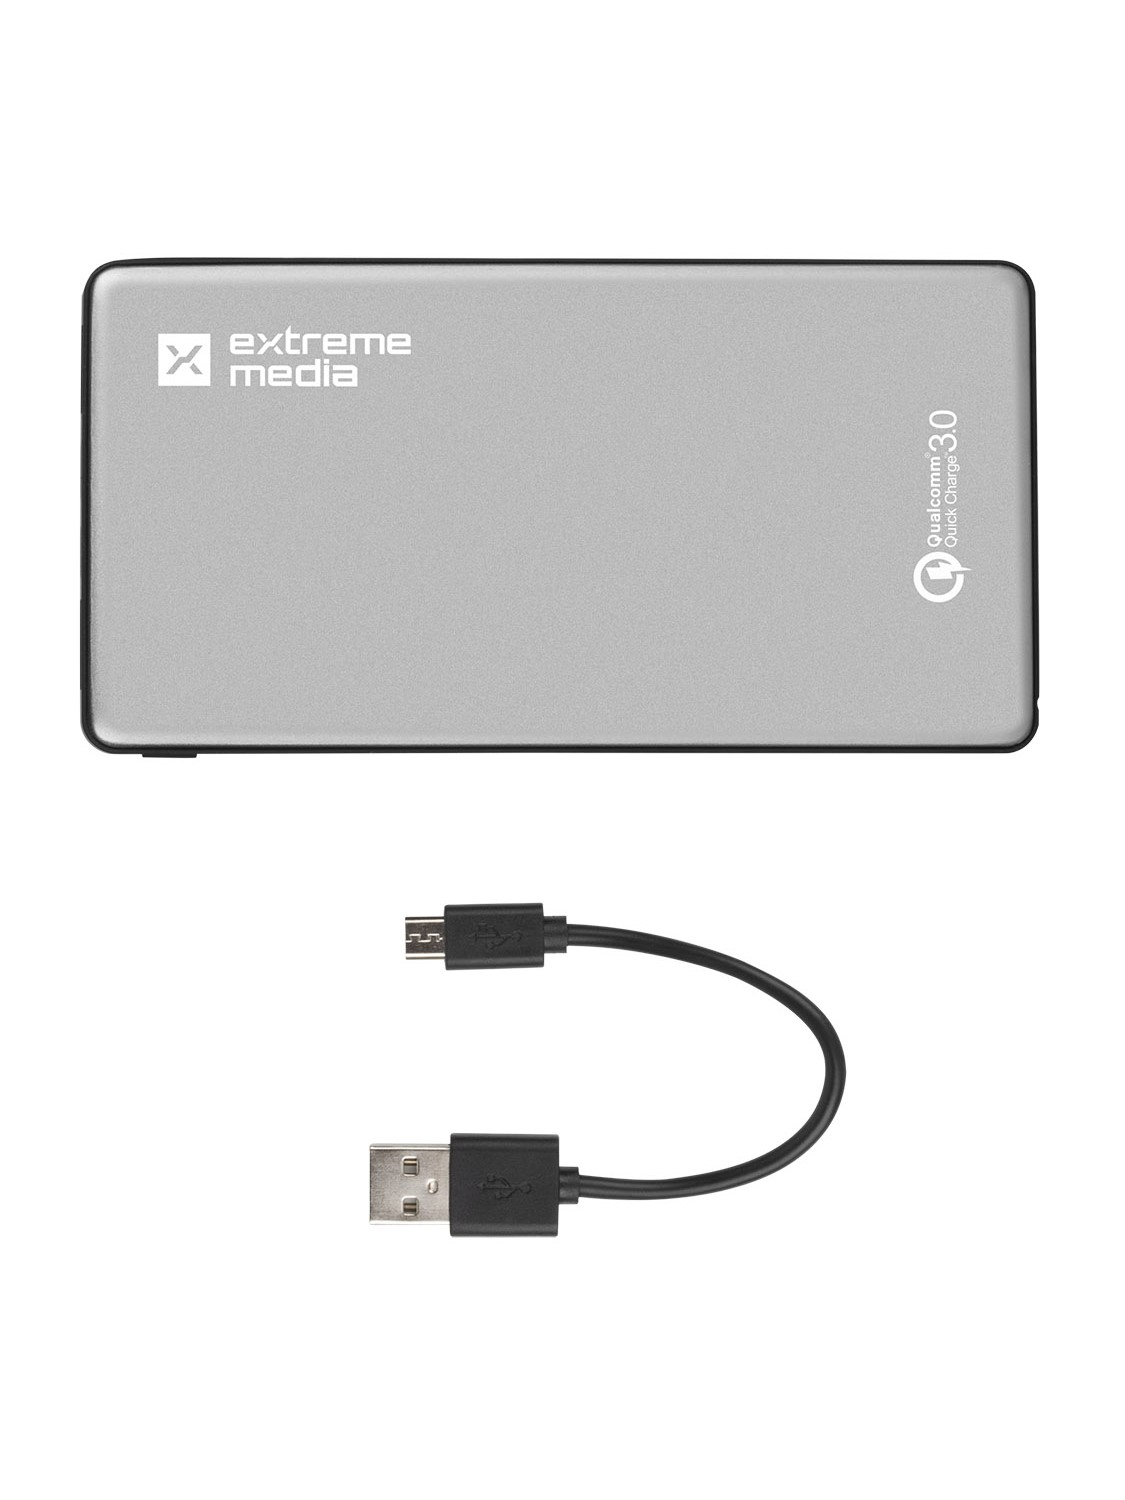 ExtremeMedia_Powerbank10000mAh_set